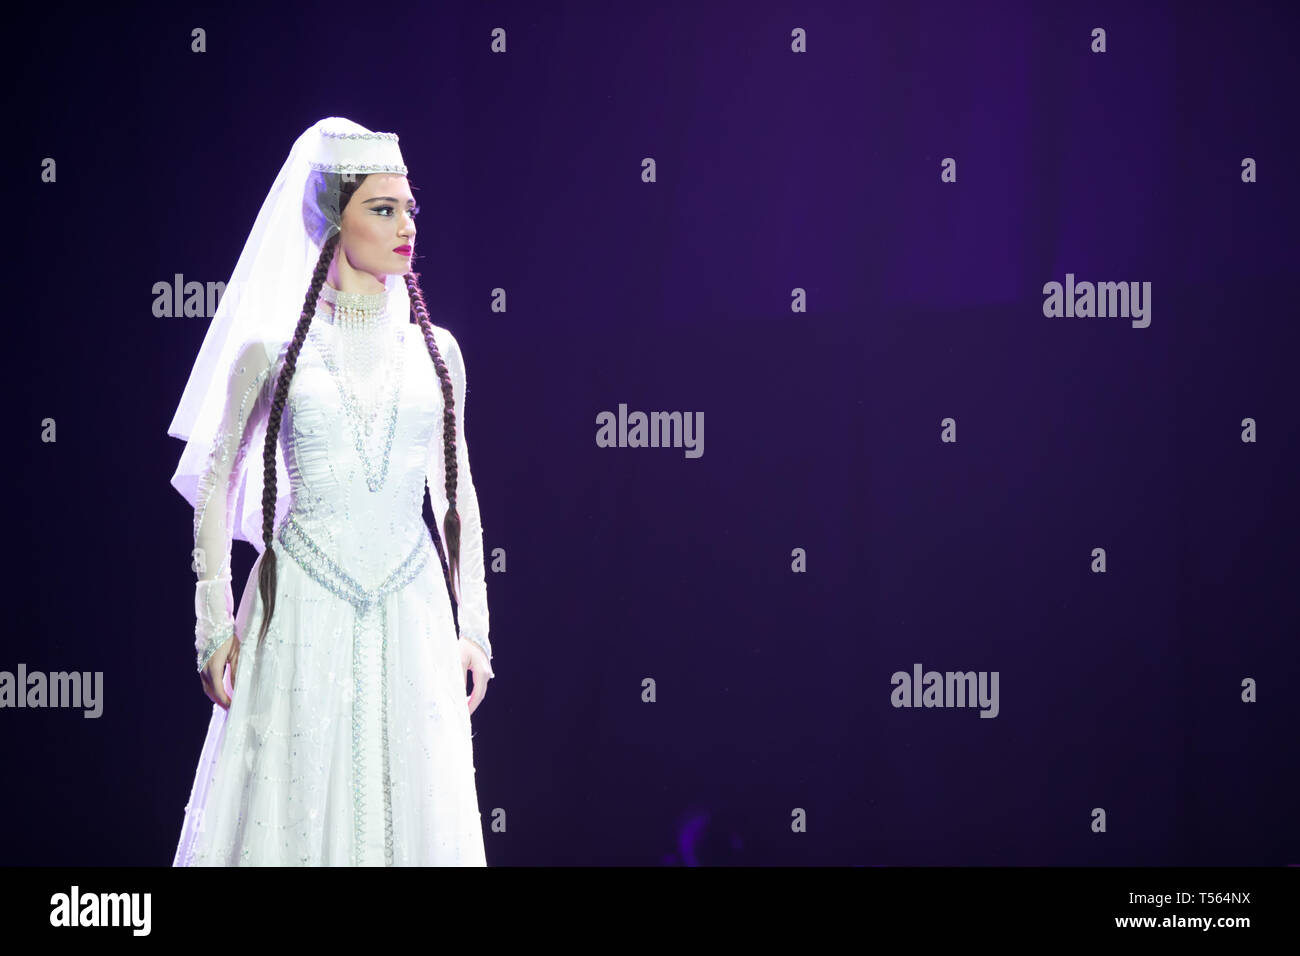 Belarus, Gomel, February 27, 2018. Concert hall. Speech of the national Georgian ballet Sukhishvili.A Georgian woman in a national white costume dance - Stock Image